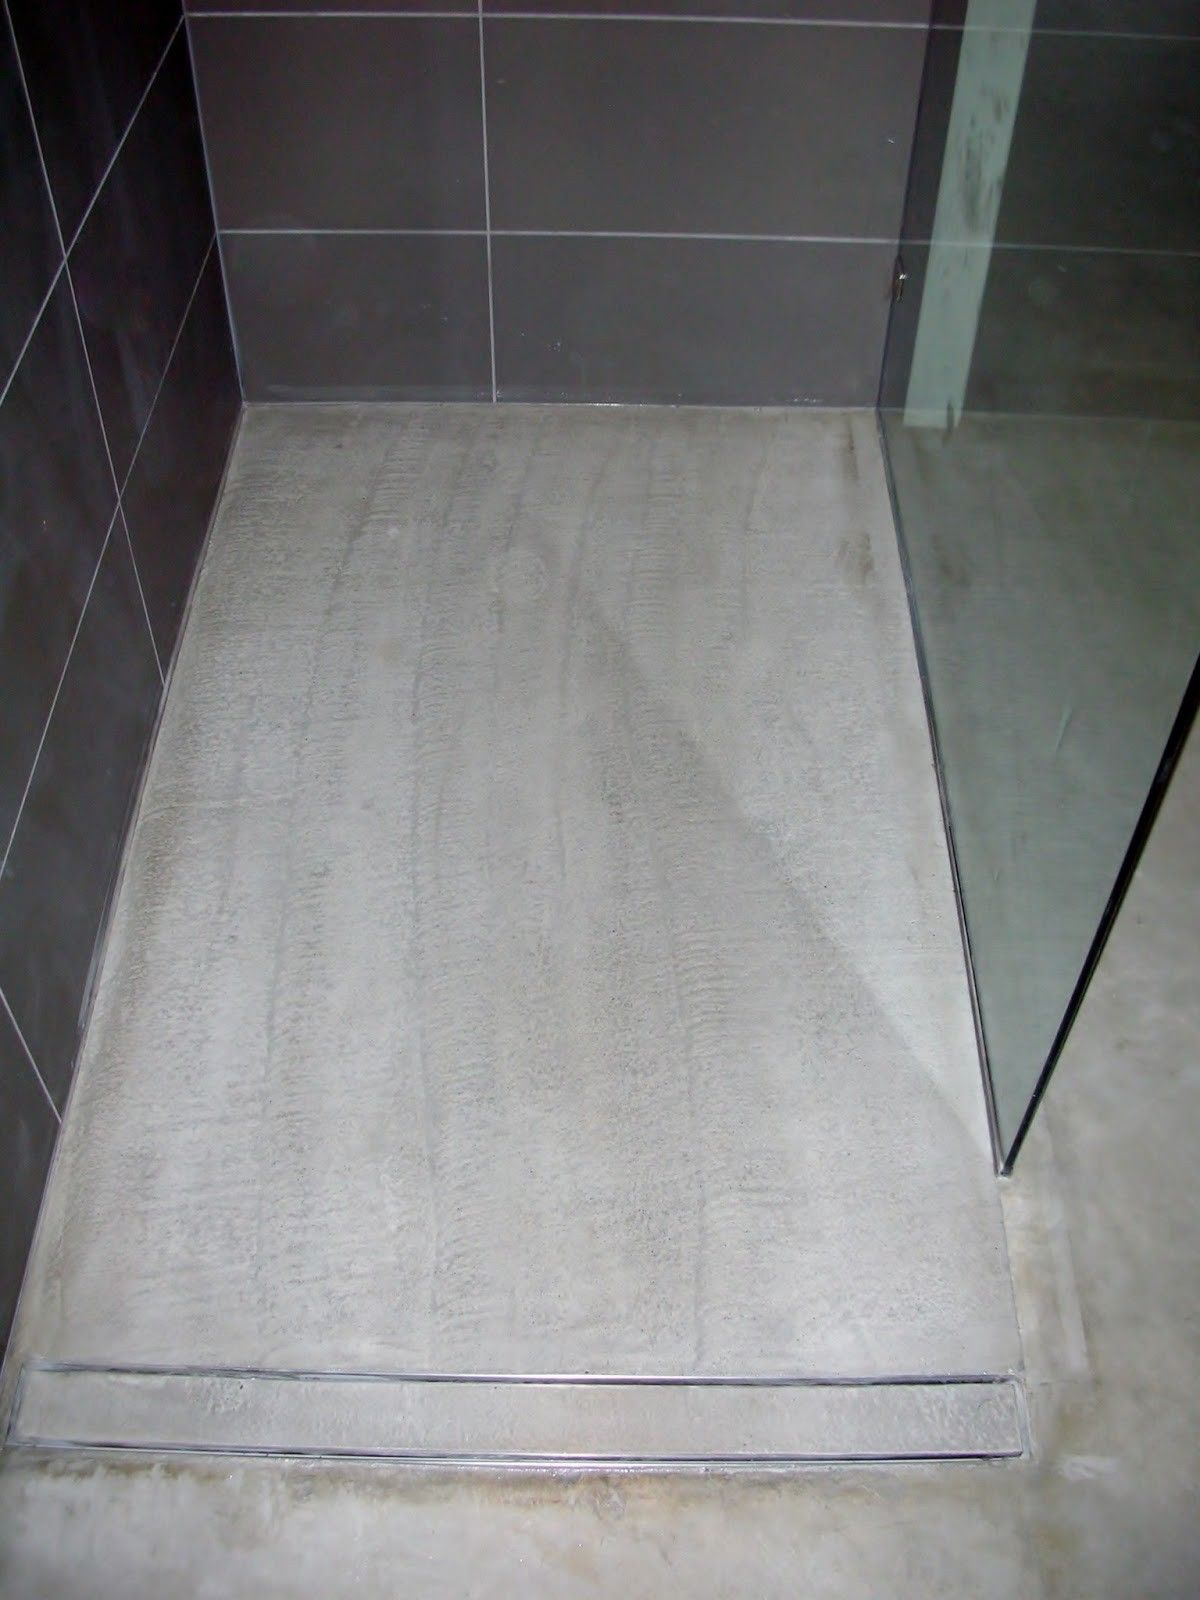 Floor shower floor tile shower with floor made of high quality floor shower floor tile shower with floor made of high quality ceramic as well as dailygadgetfo Image collections